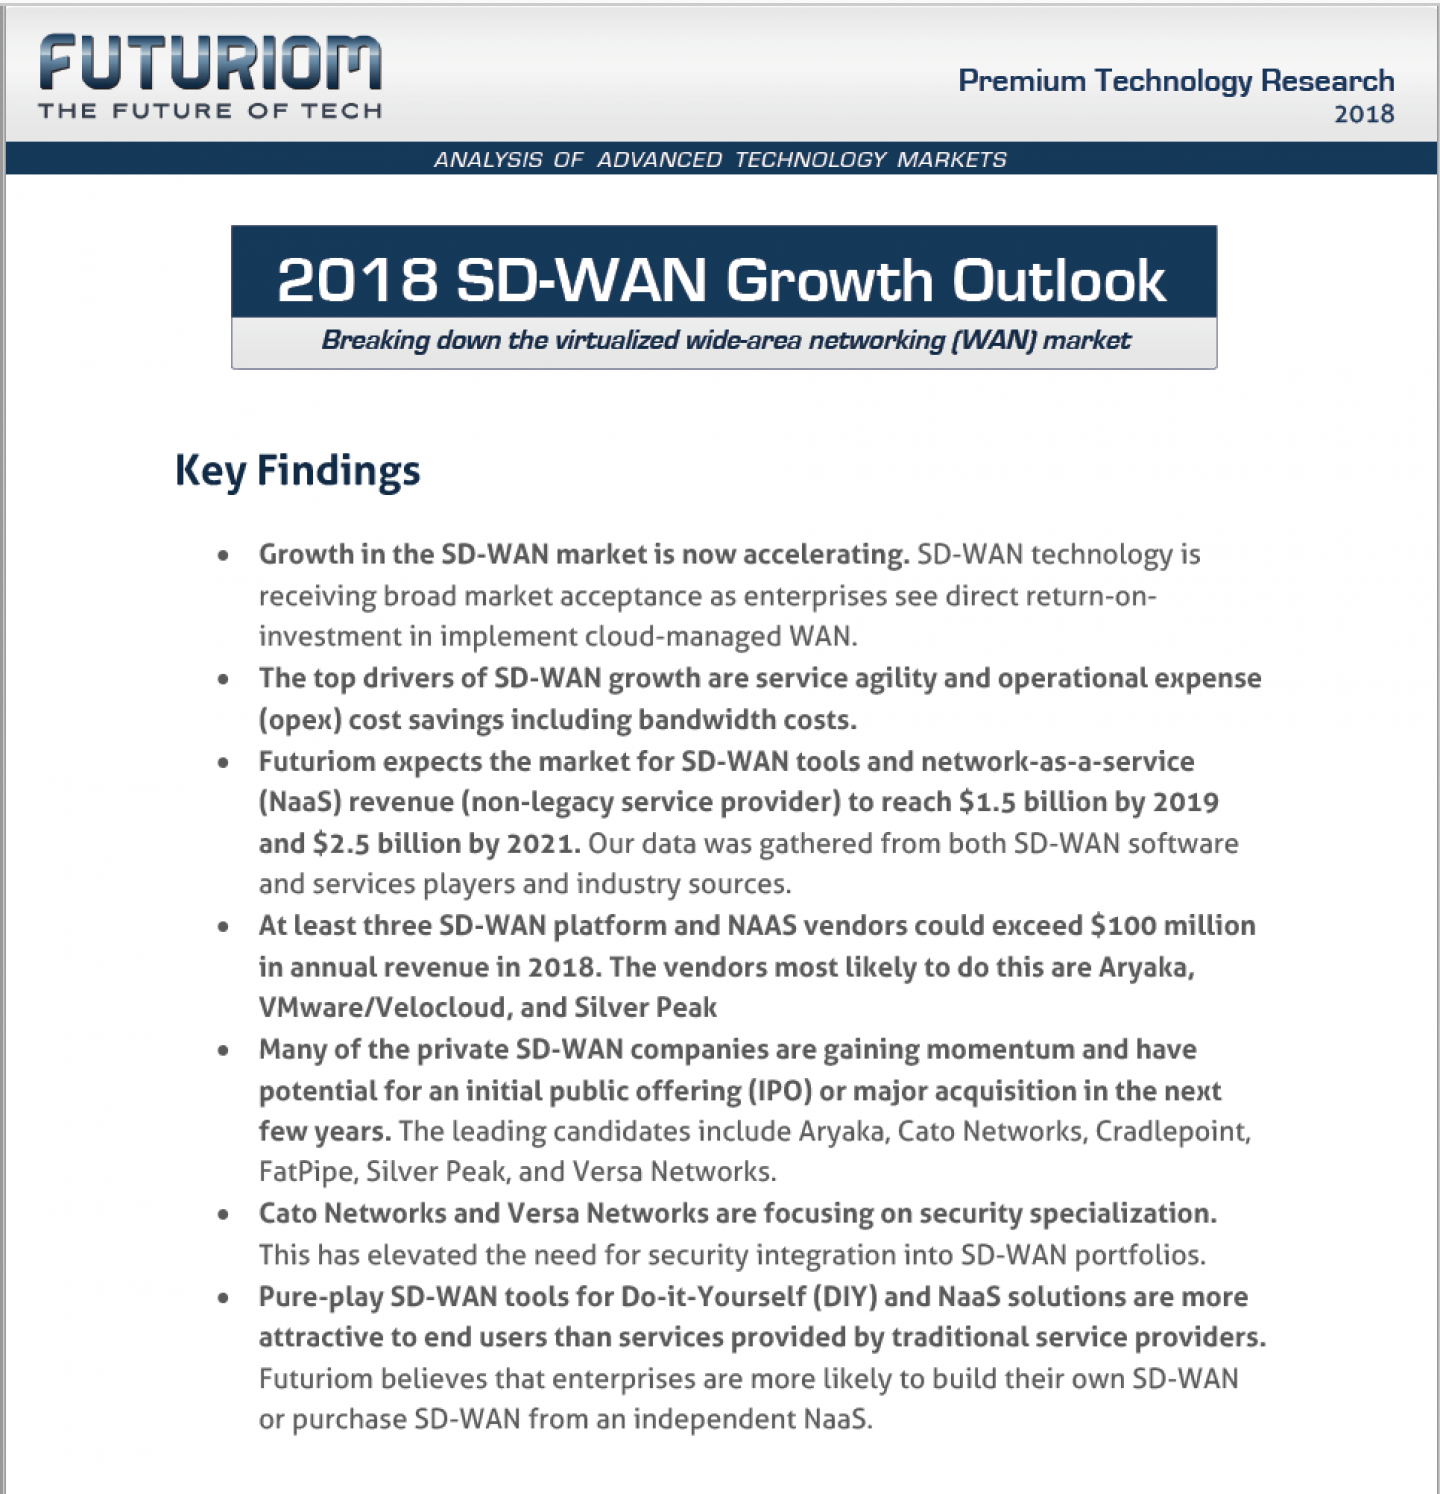 The 2018 SD-WAN Growth Outlook Is Here! - Futuriom